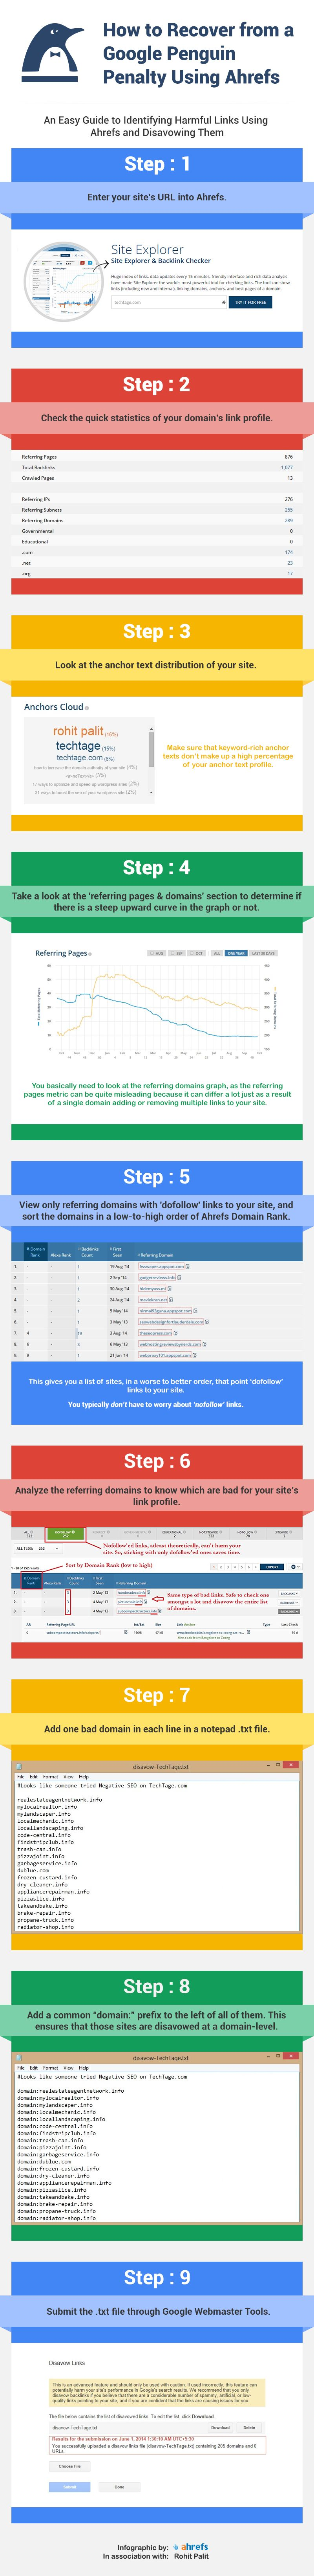 How to recover from a Google #Penguin Penalty using Ahrefs